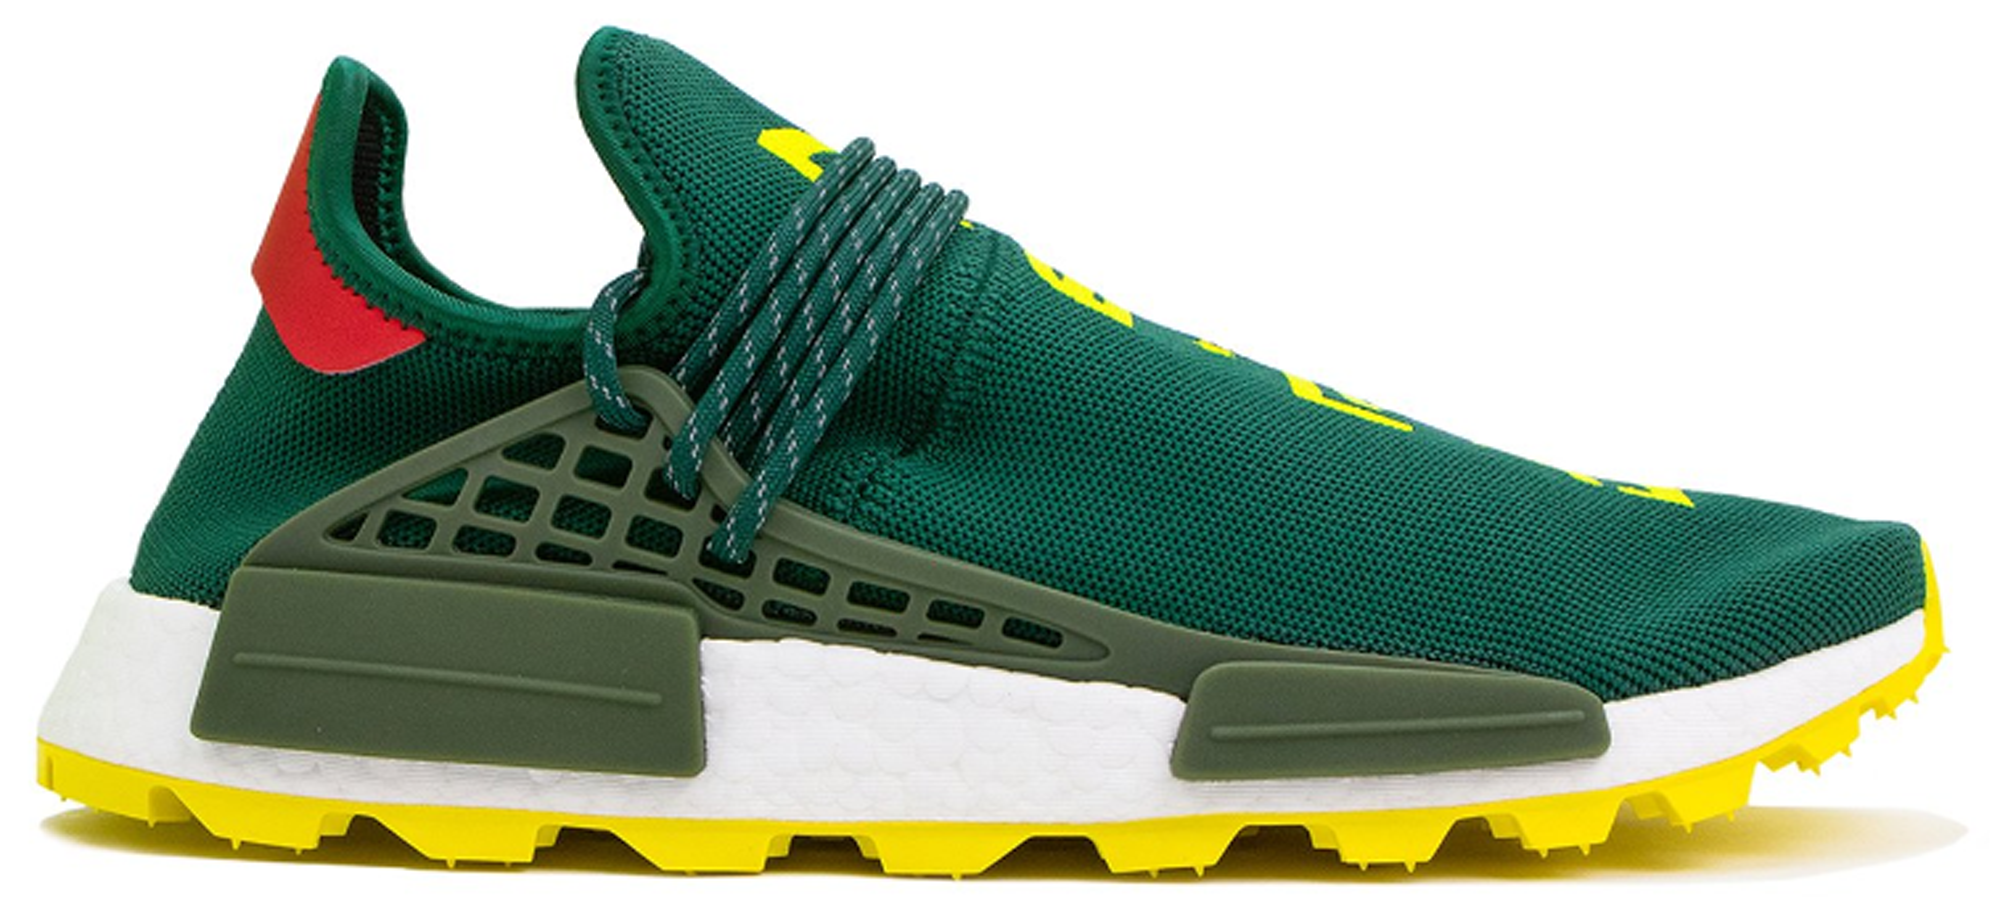 adidas NMD Hu Pharrell NERD Green Yellow